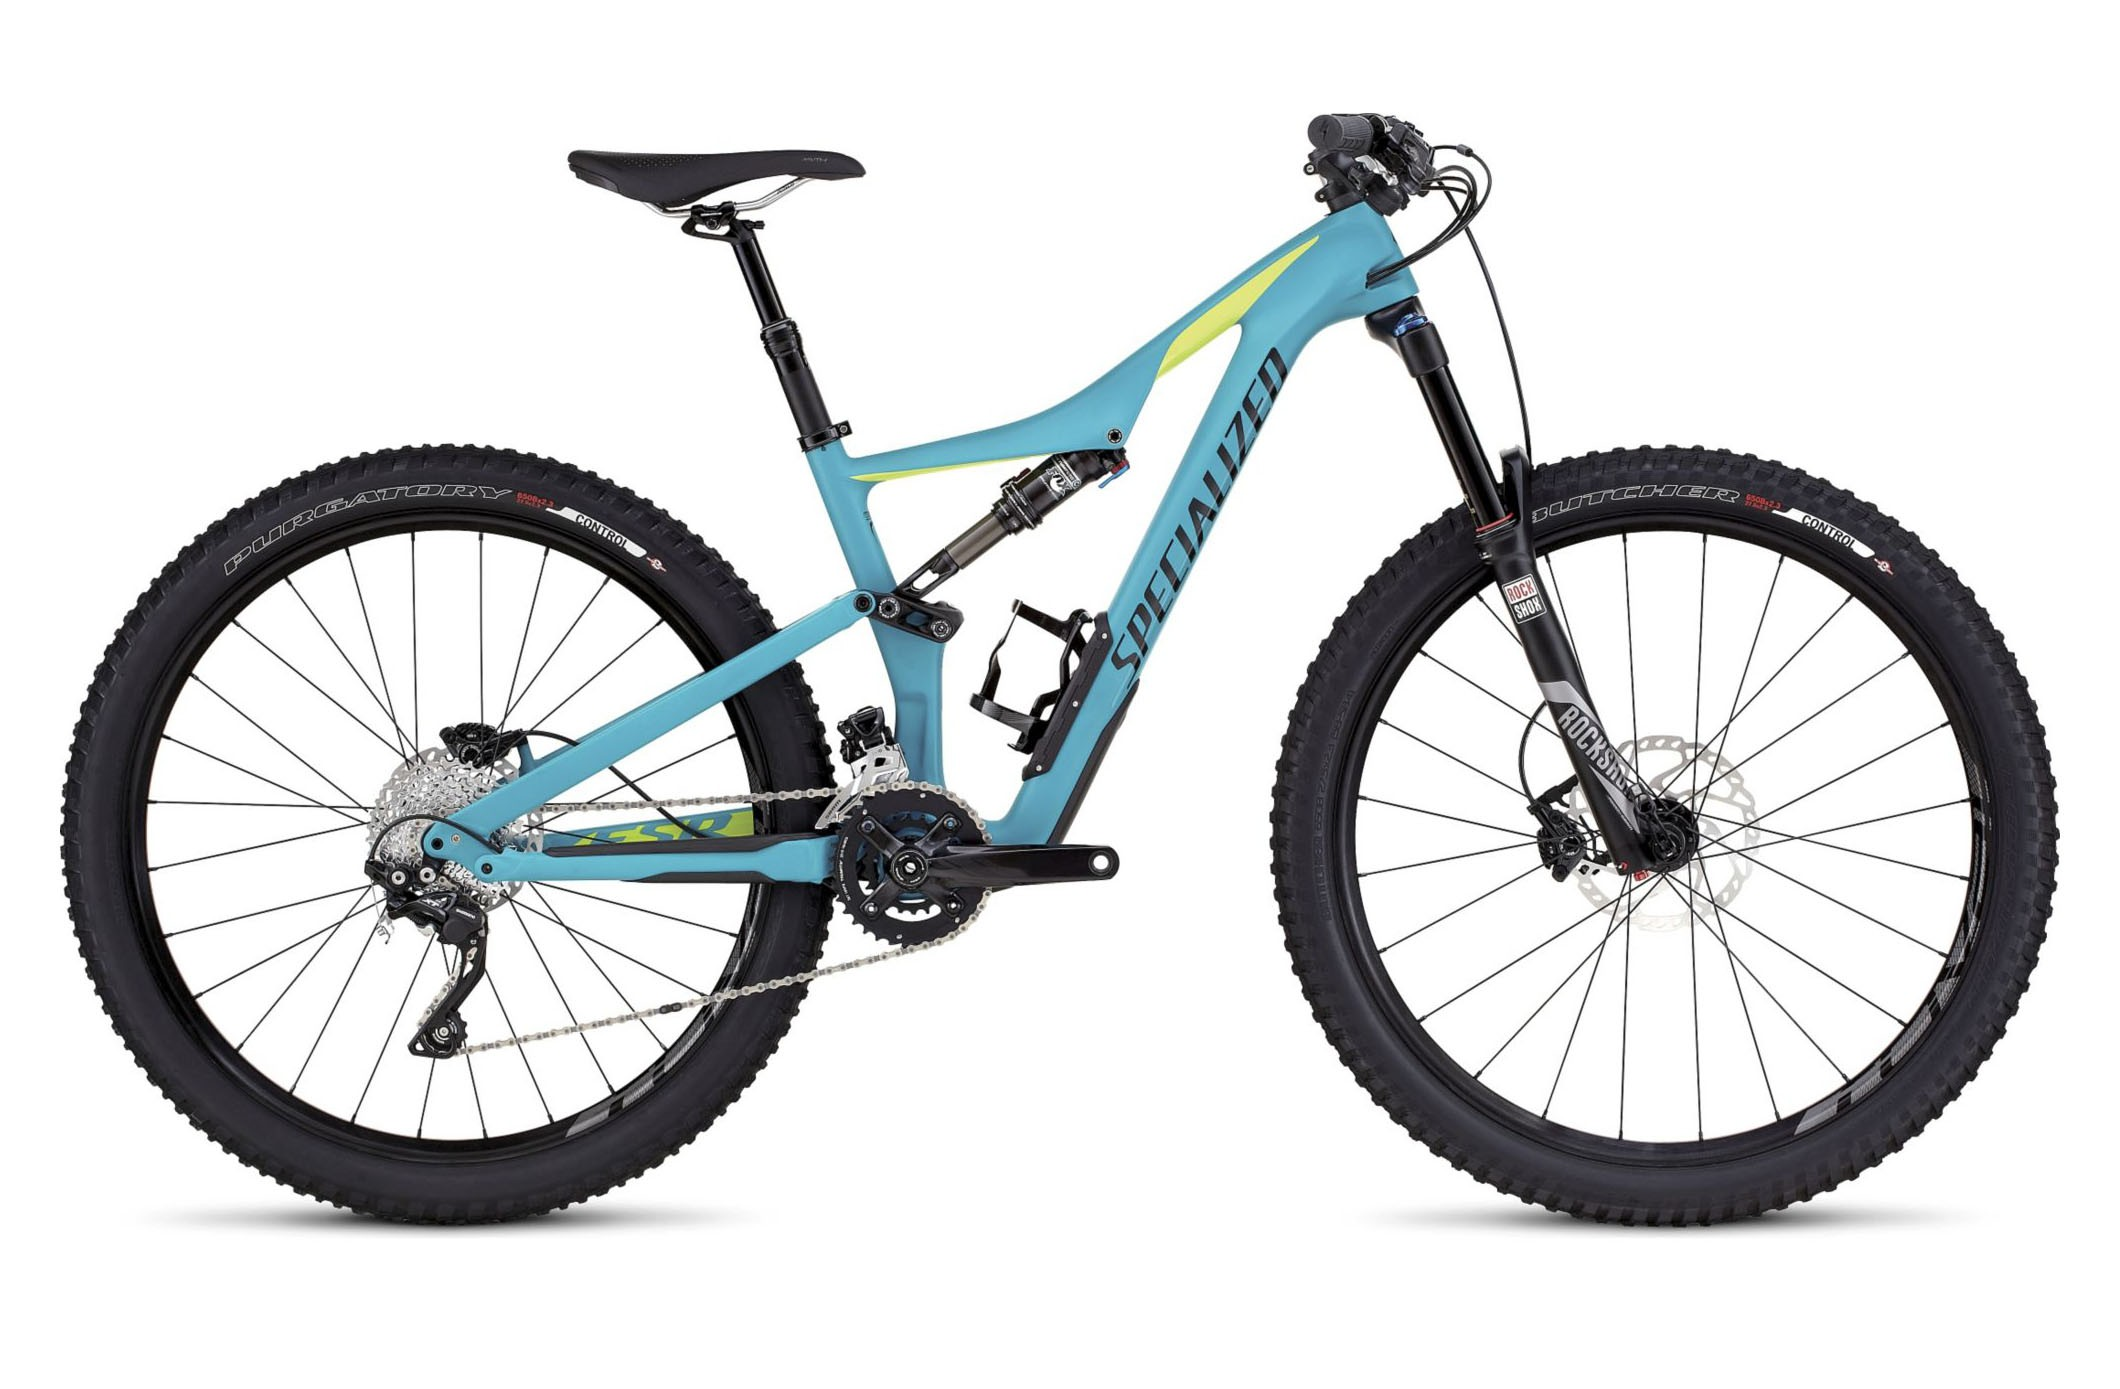 Горный велосипед Specialized Rhyme FSR Comp Carbon 650b (2016)